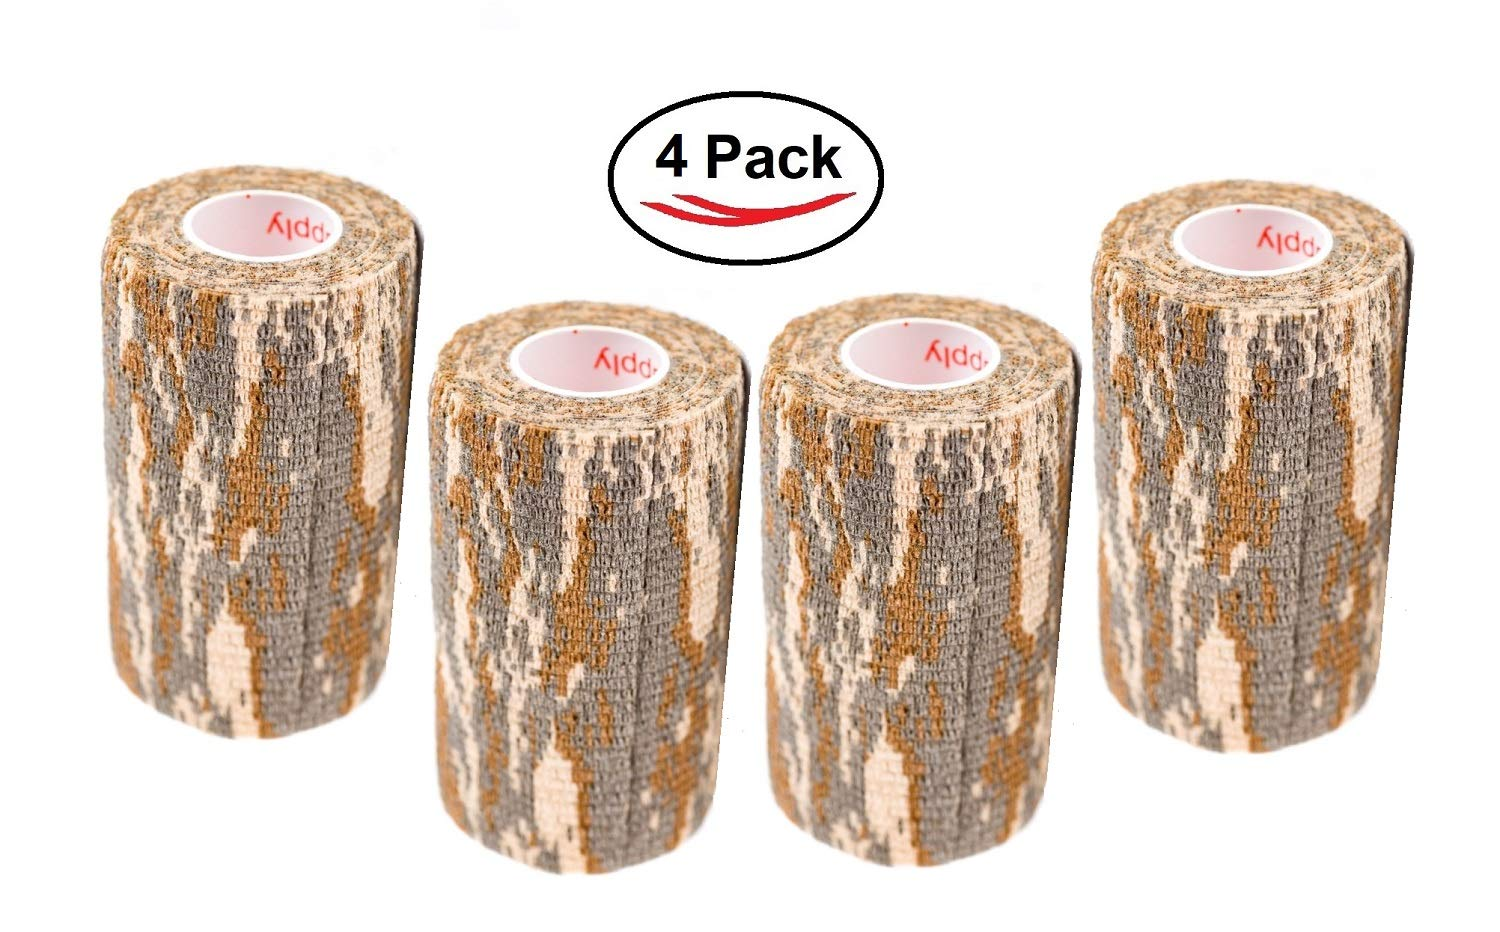 Vet Wrap Tape Self Adhesive Cohesive Bandage, FDA Approved, Camo Camouflage Colors Dog Cat Horse Self Stick Adherent Bandaging Tape 3 inch x 5 Yards 2, 4, 6, 12 or 24 Pack by Prairie Horse Supply